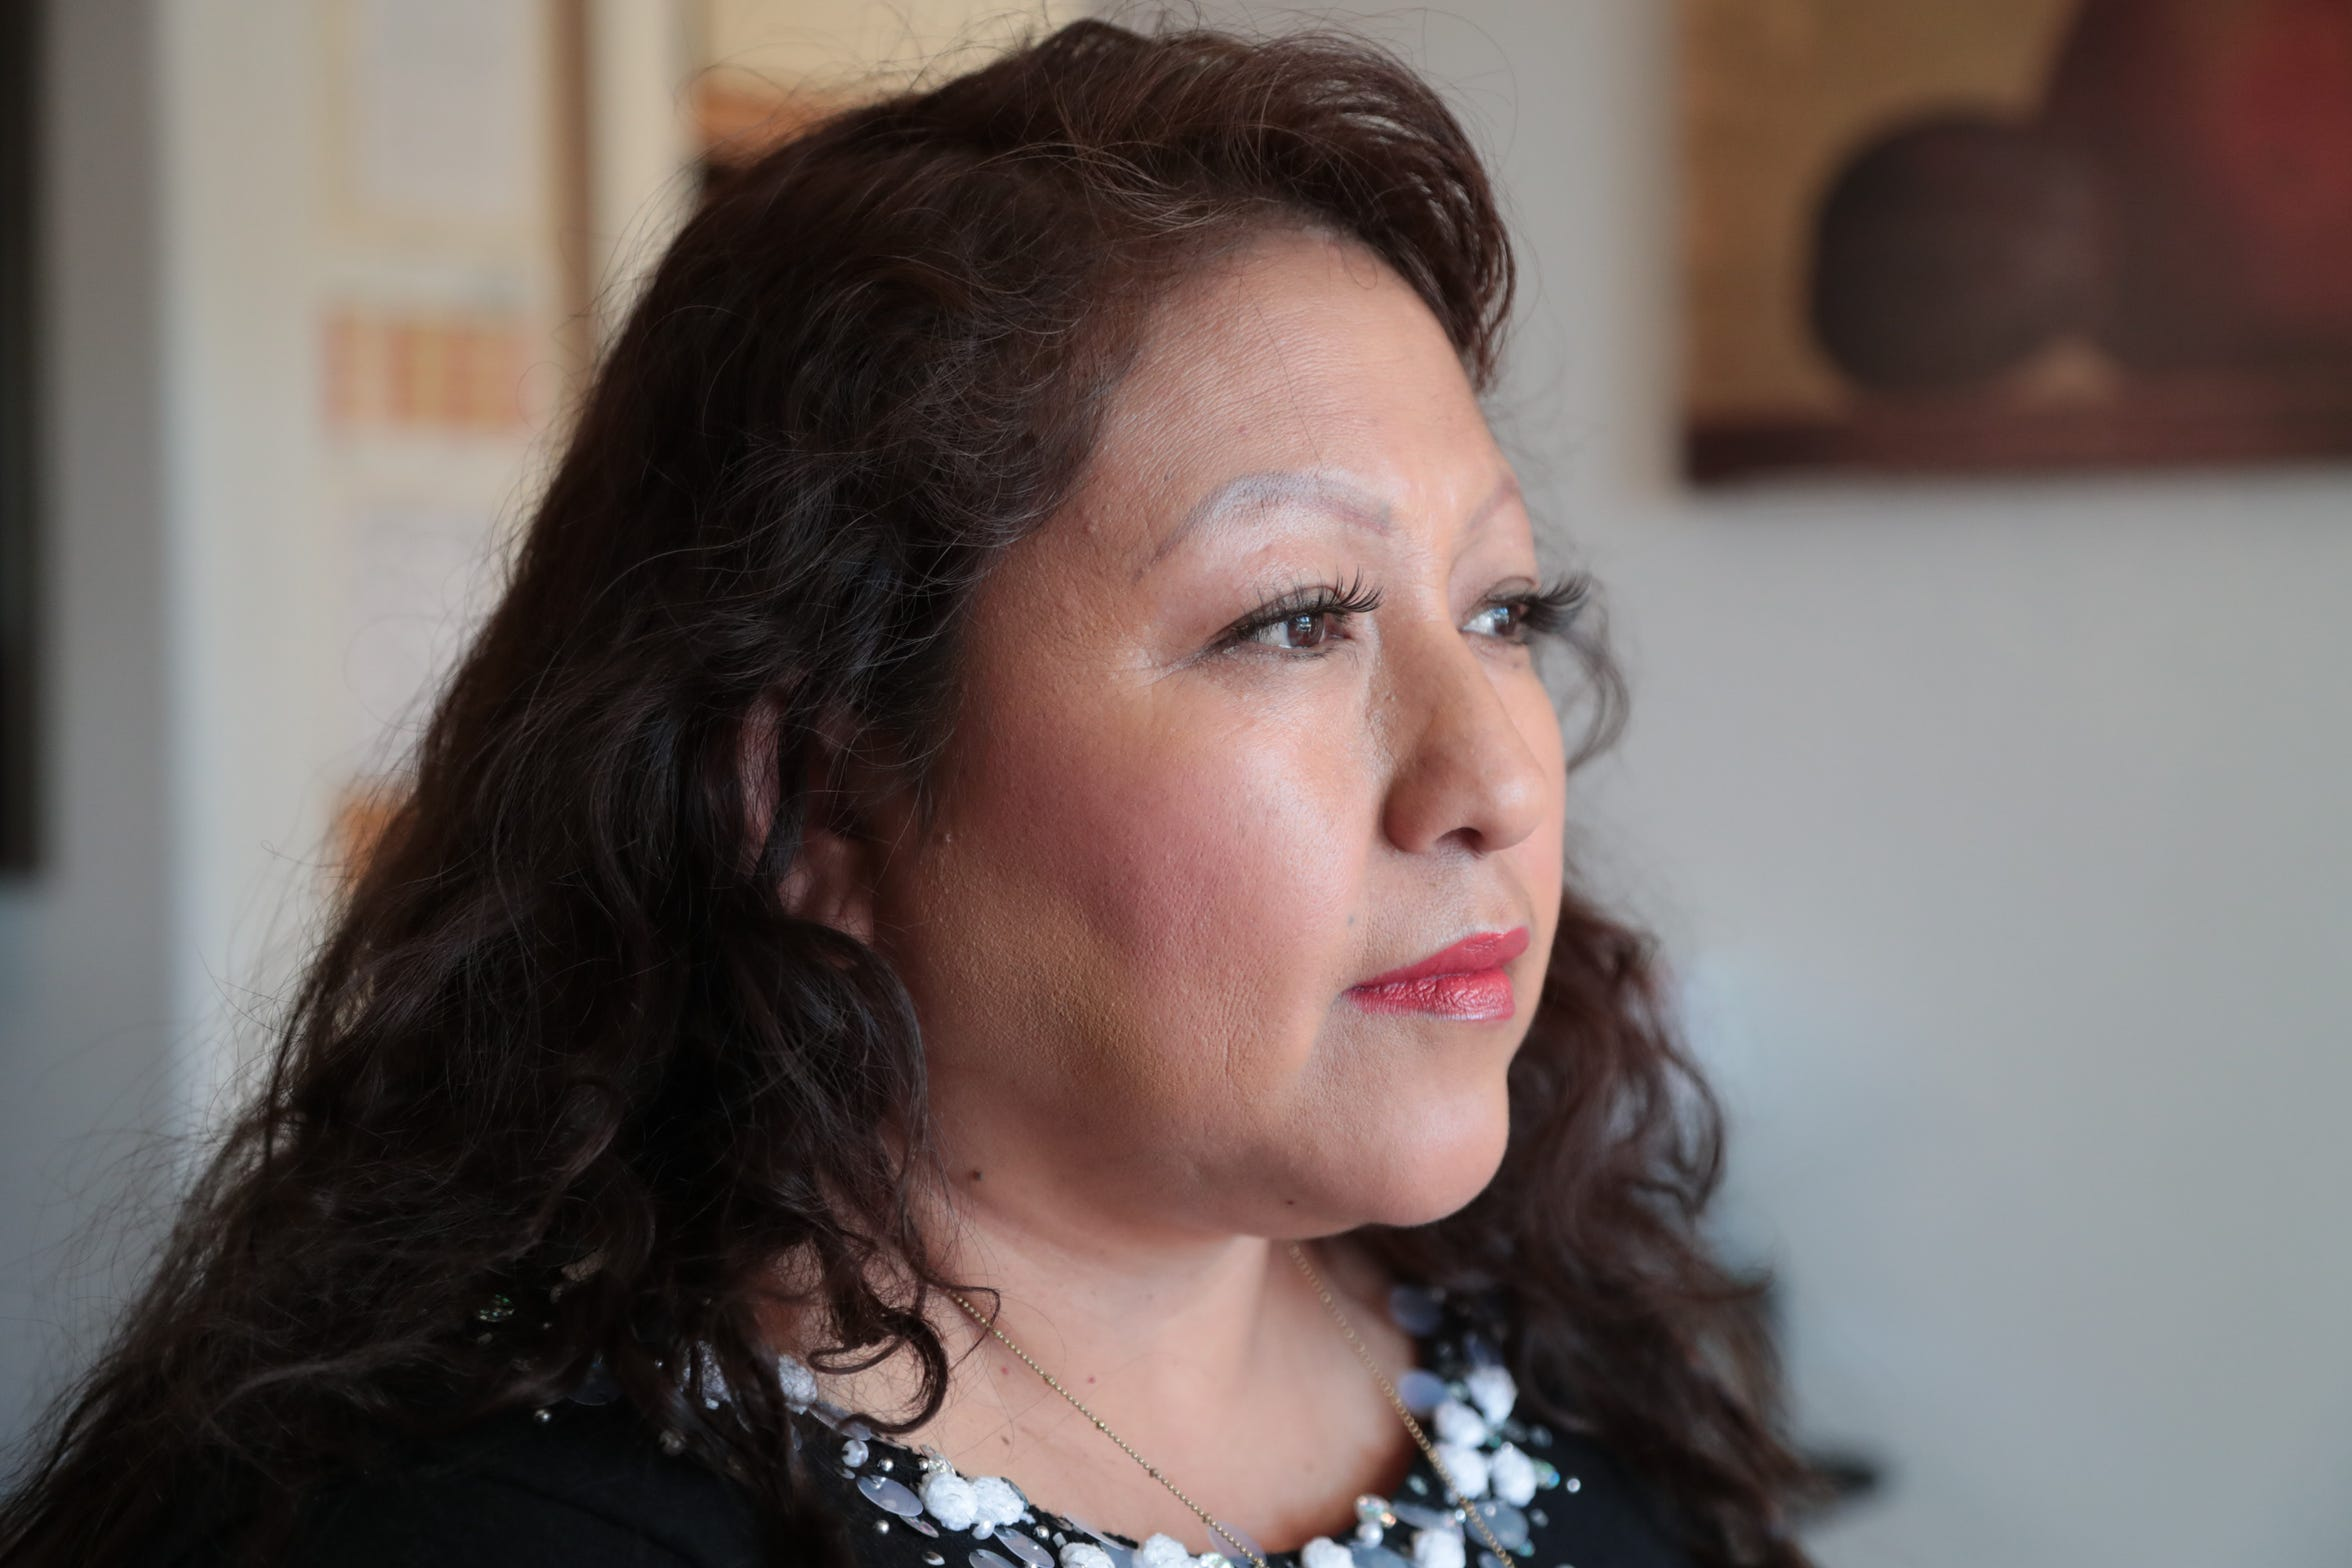 Veronica Juarez is one of the former residents of the Rancho Palms mobile park and a plaintiff in a suit against Rancho Mirage. The suit claims that the city  improperly closed the park, Cathedral City, Calif., December 16, 2018.